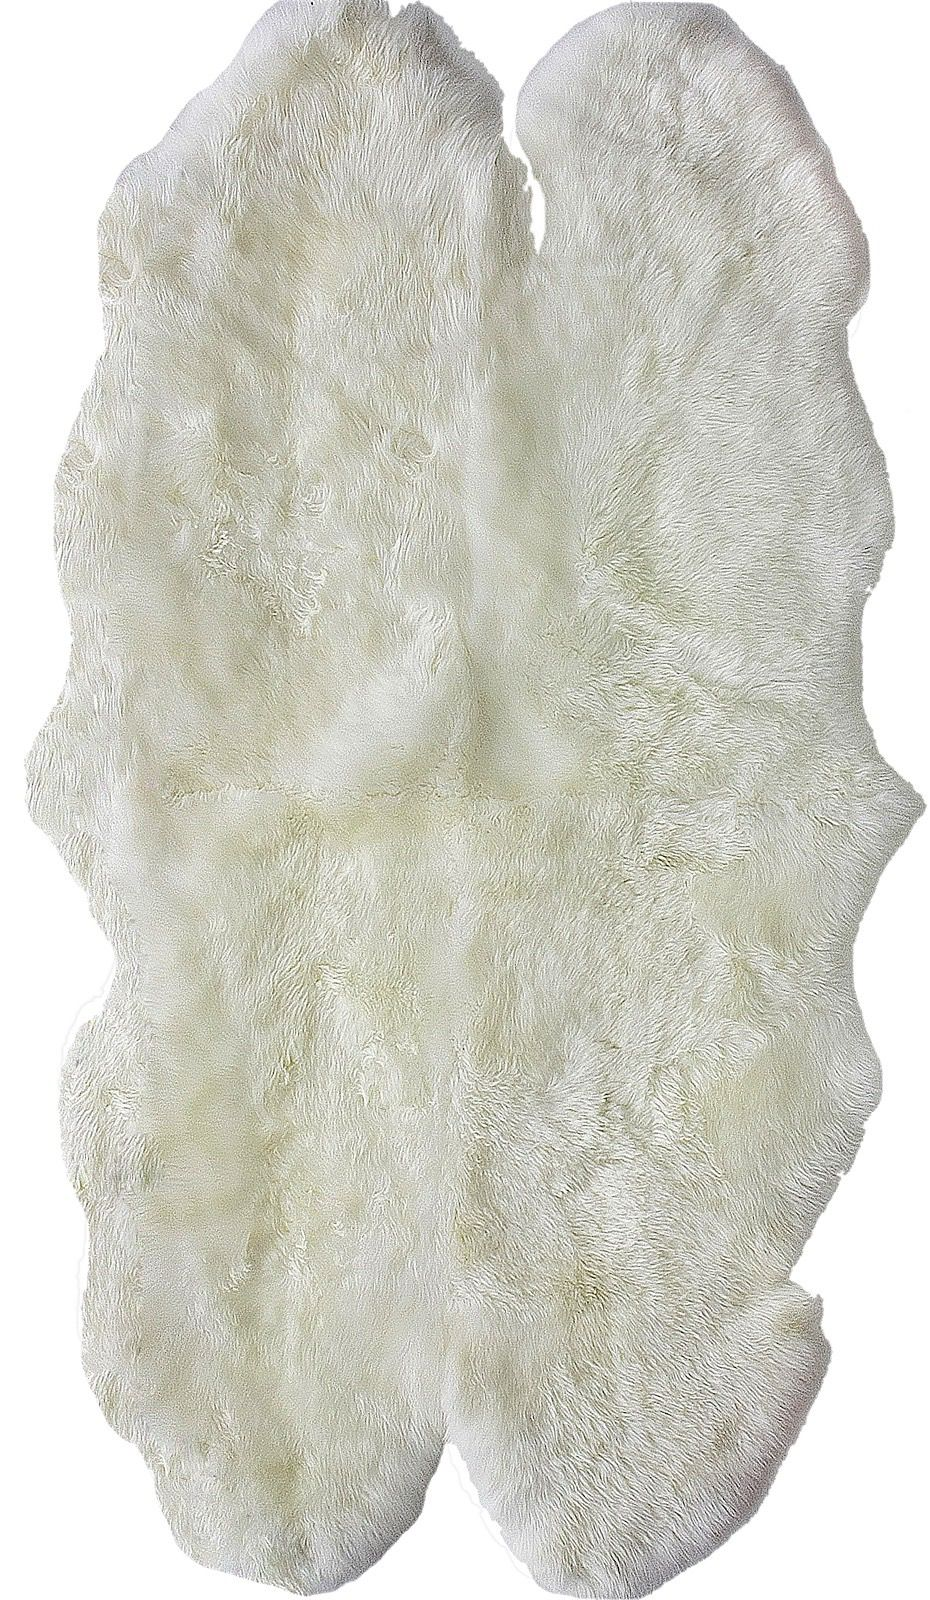 nuloom quarto luxe sheepskin shag area rug collection